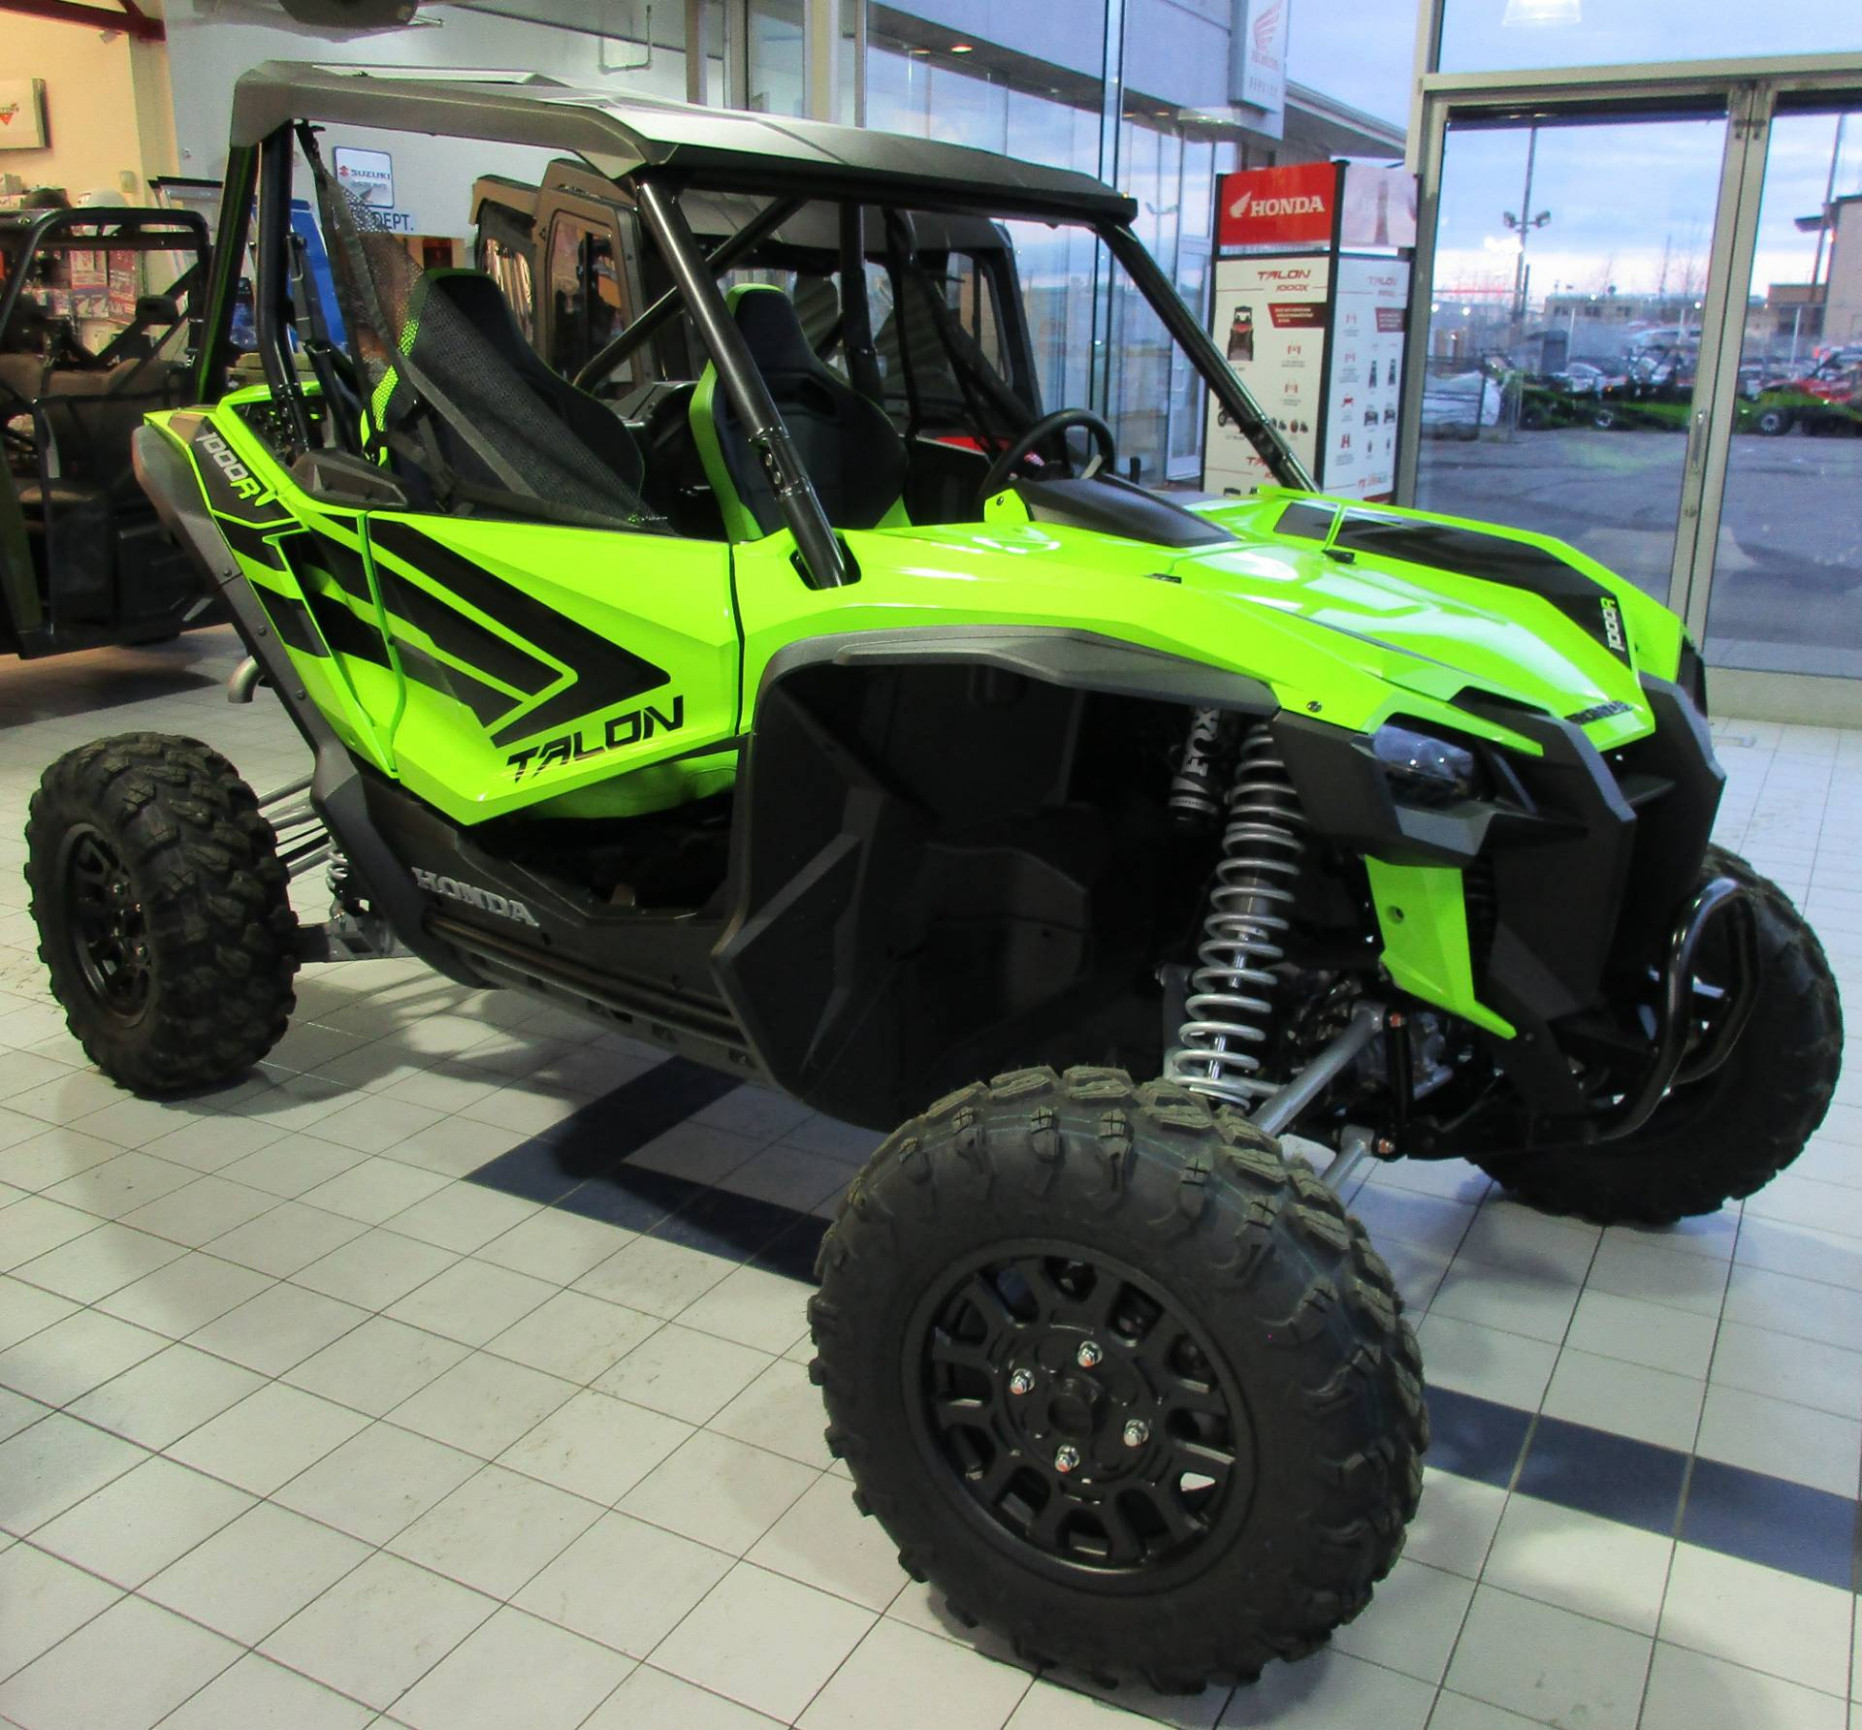 8 Honda Talon 8R in Anchorage, Alaska - 2020 honda talon 1000r